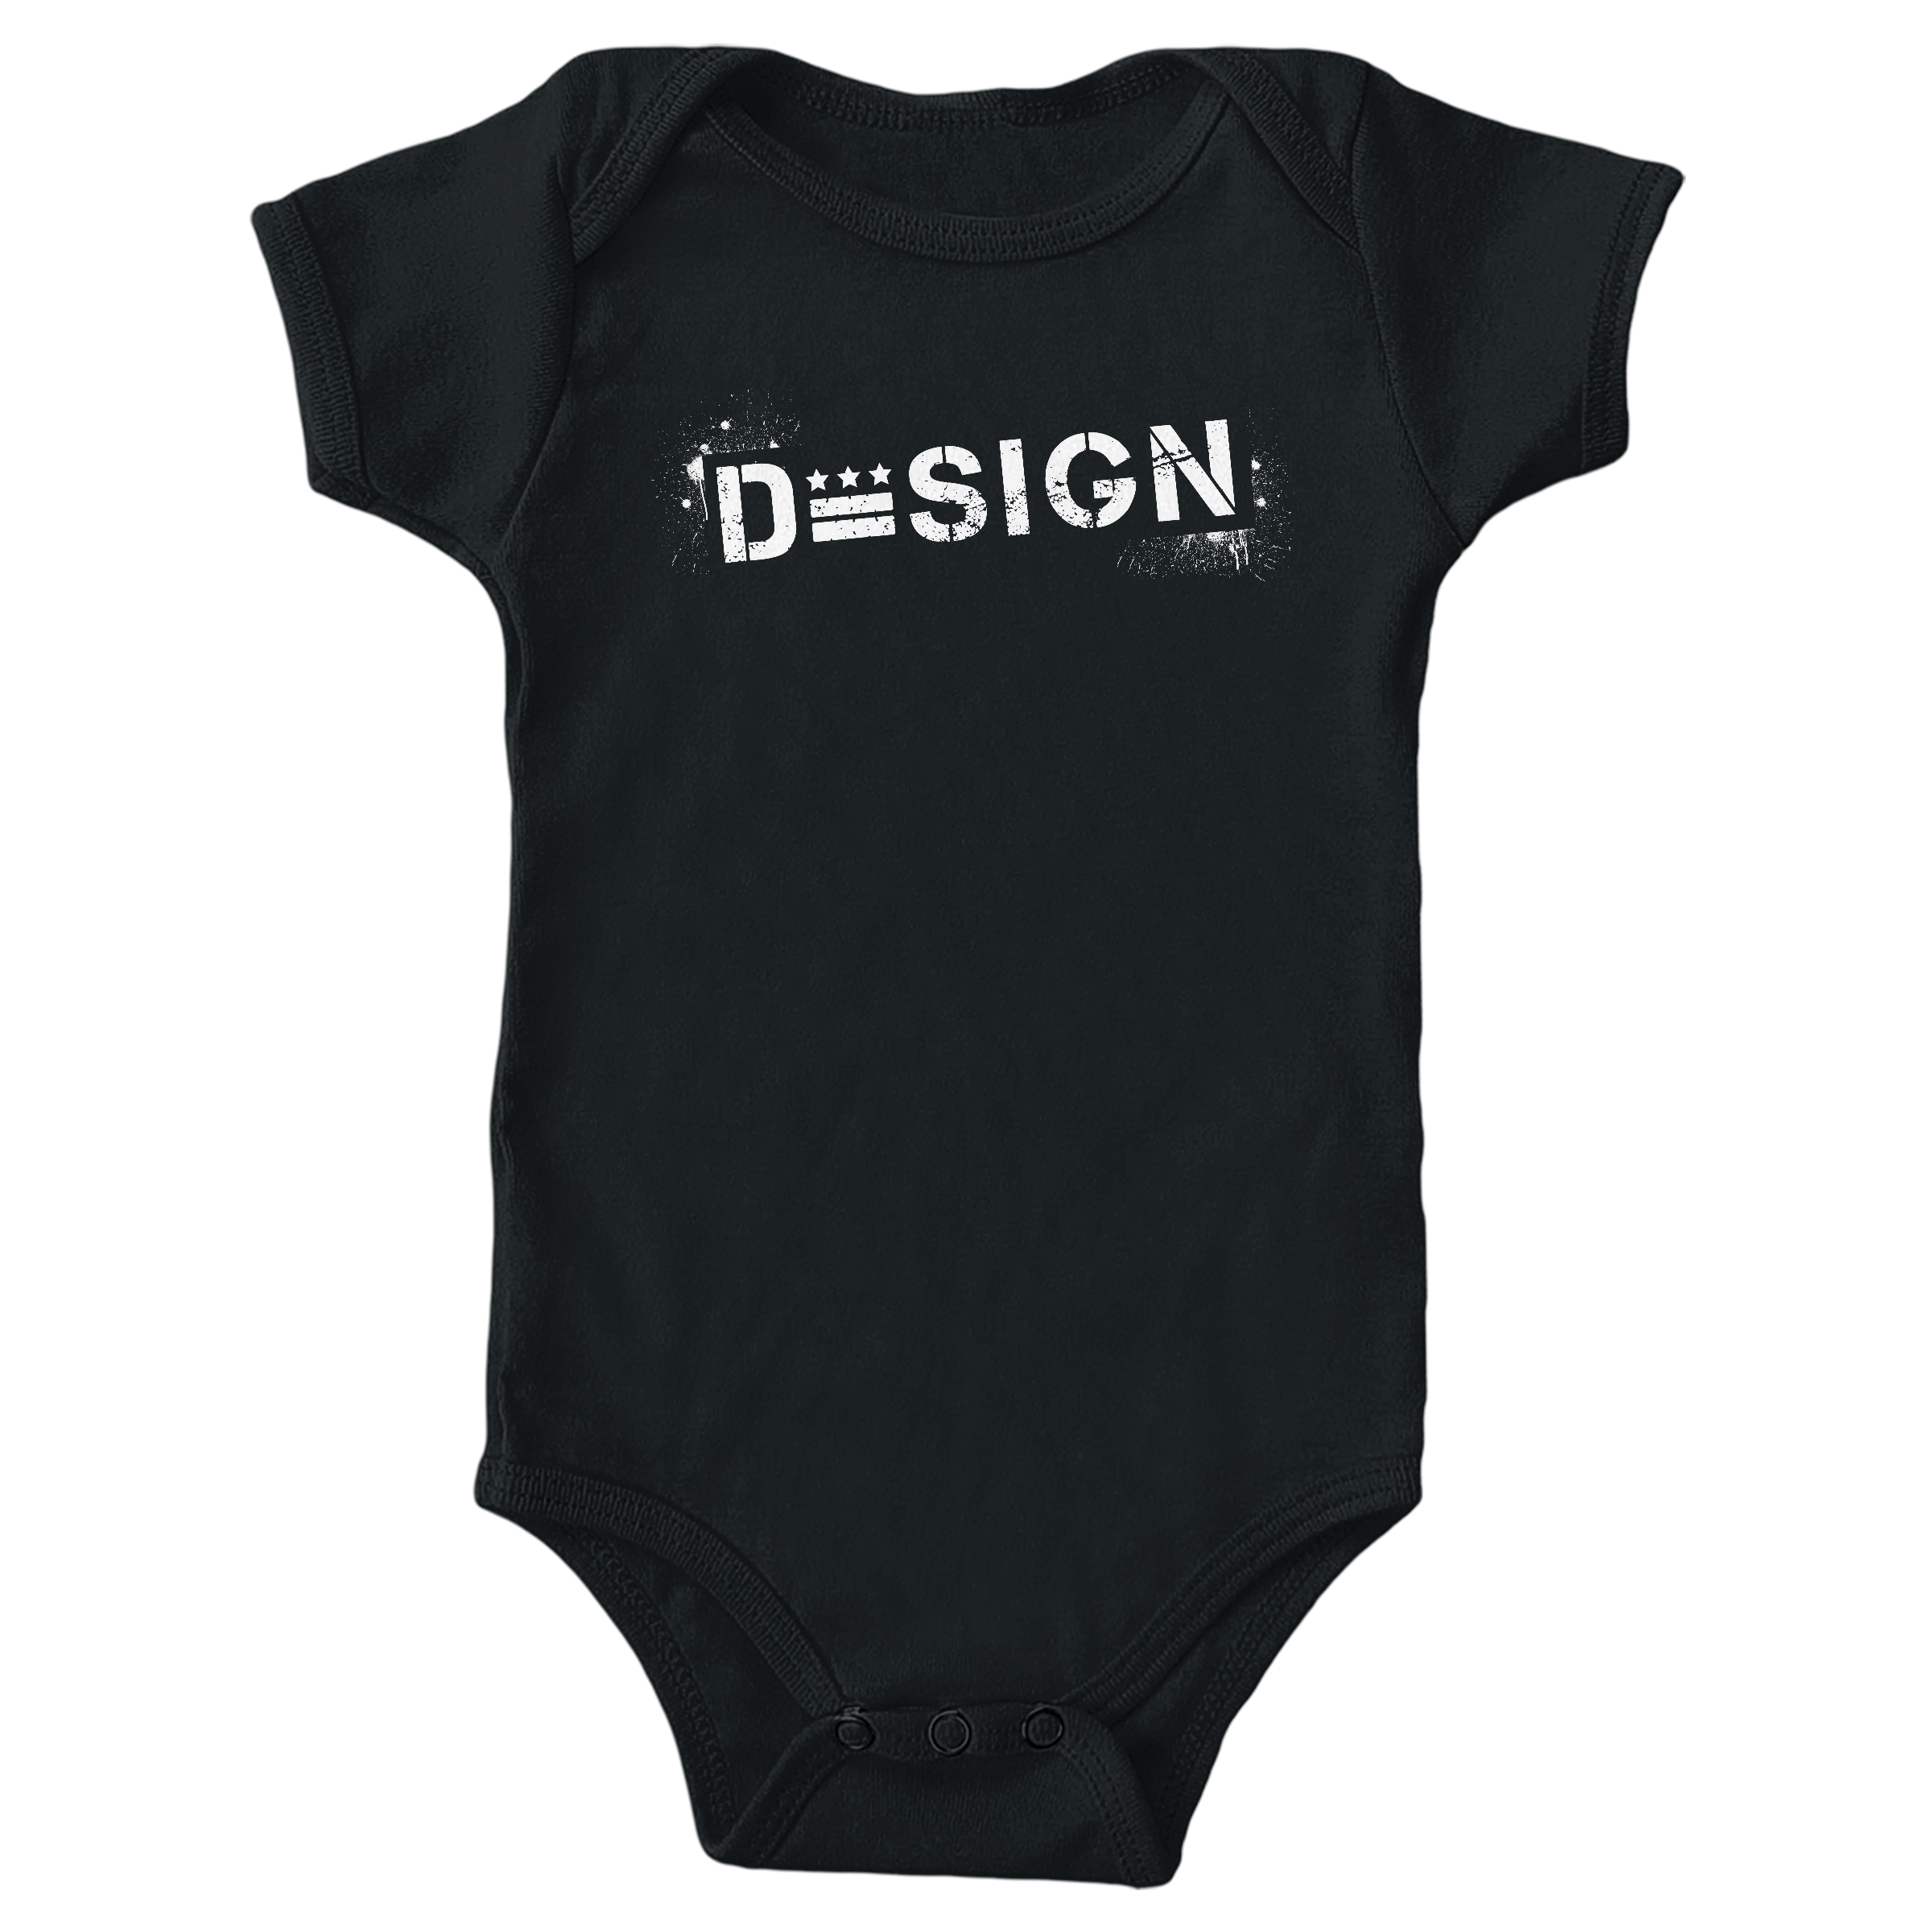 DC Design Black (Onesie)